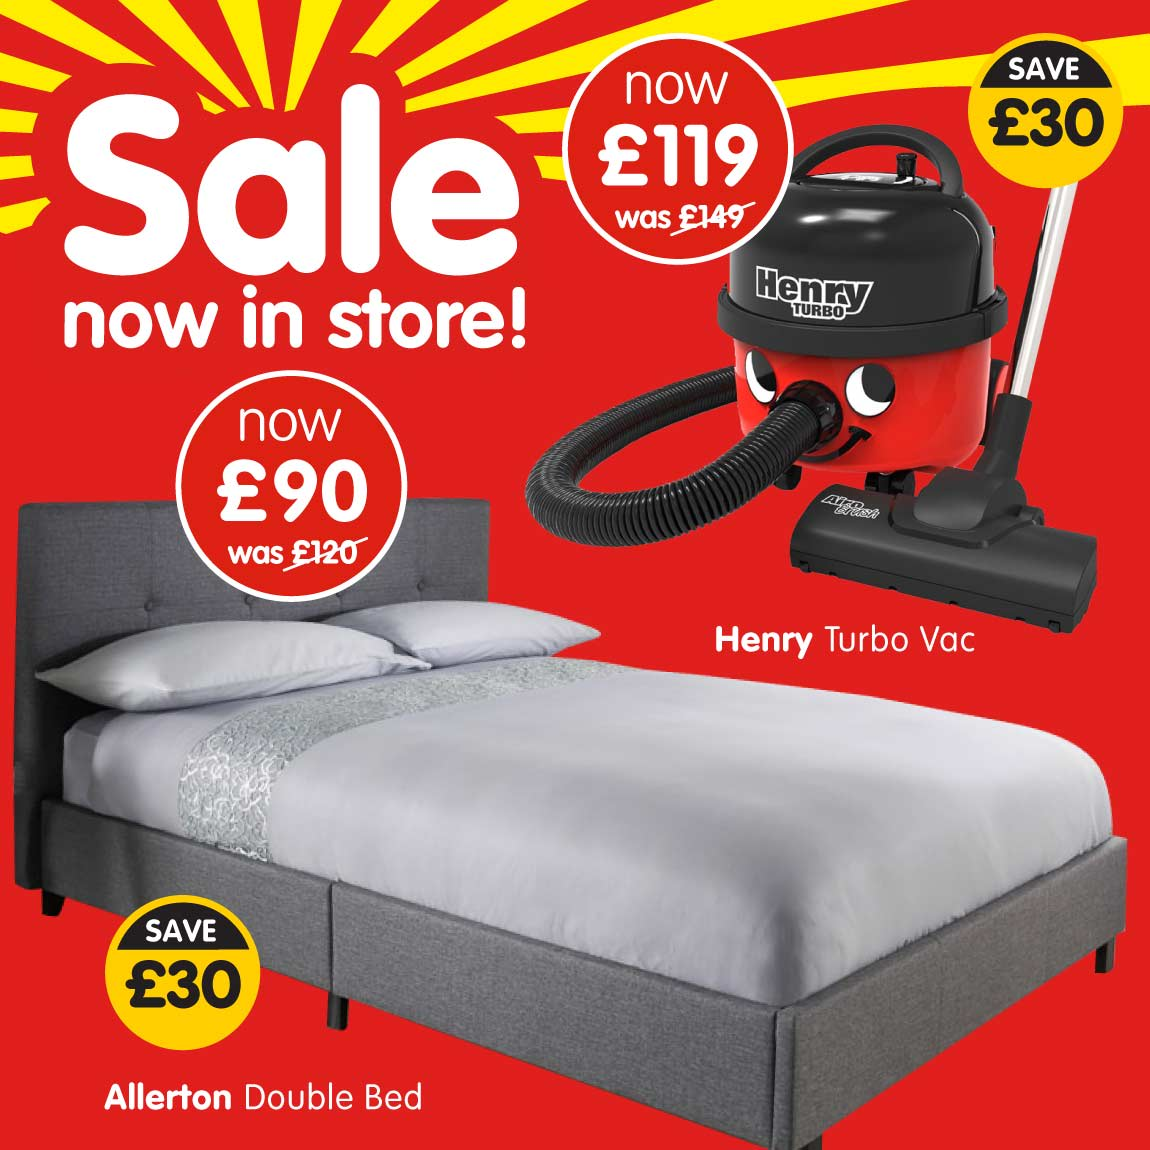 Sale now in store at B&M.